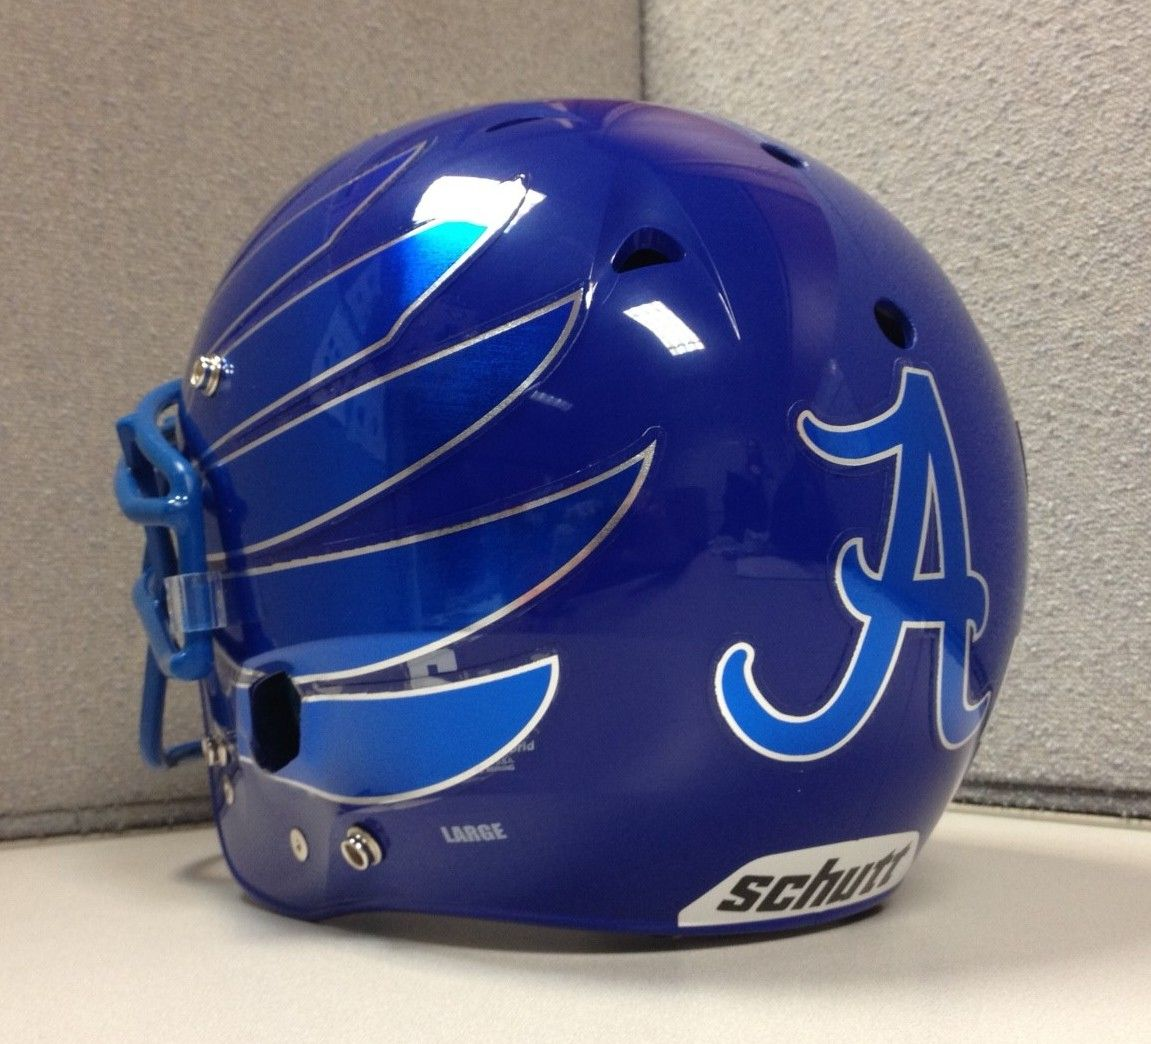 Chrome wing decals are very popular check out